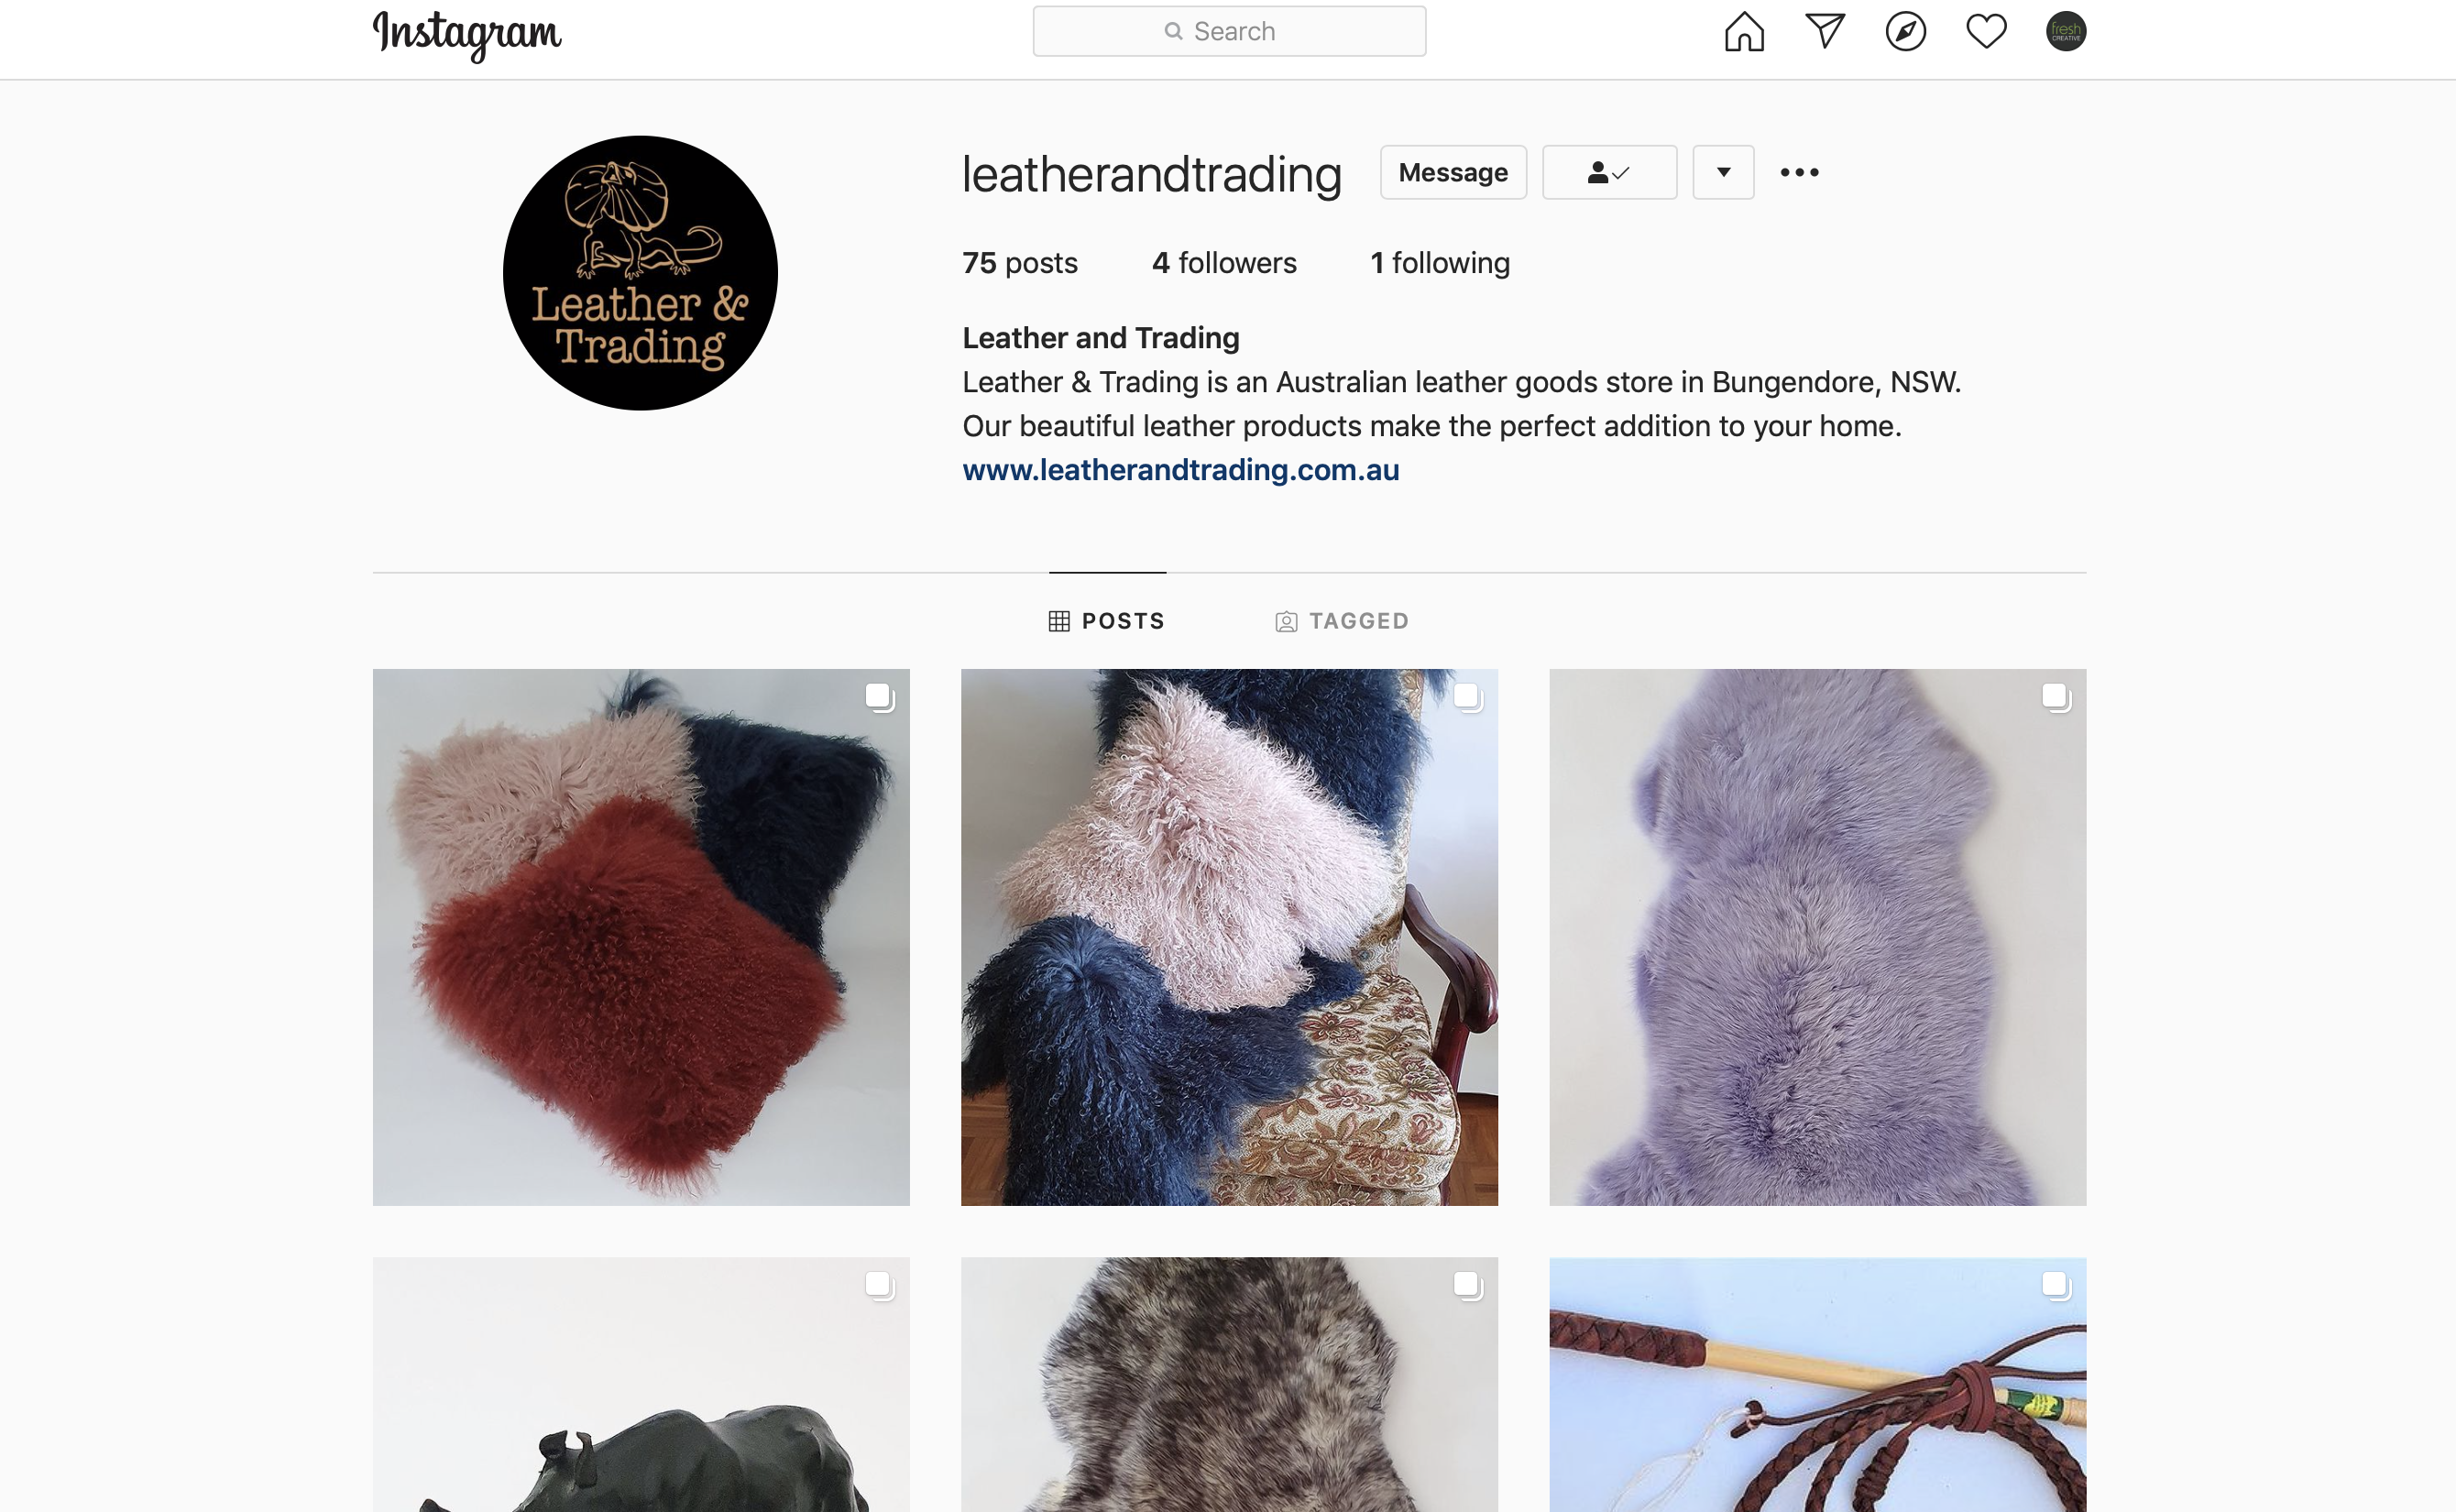 Leather and Trading Instagram Account